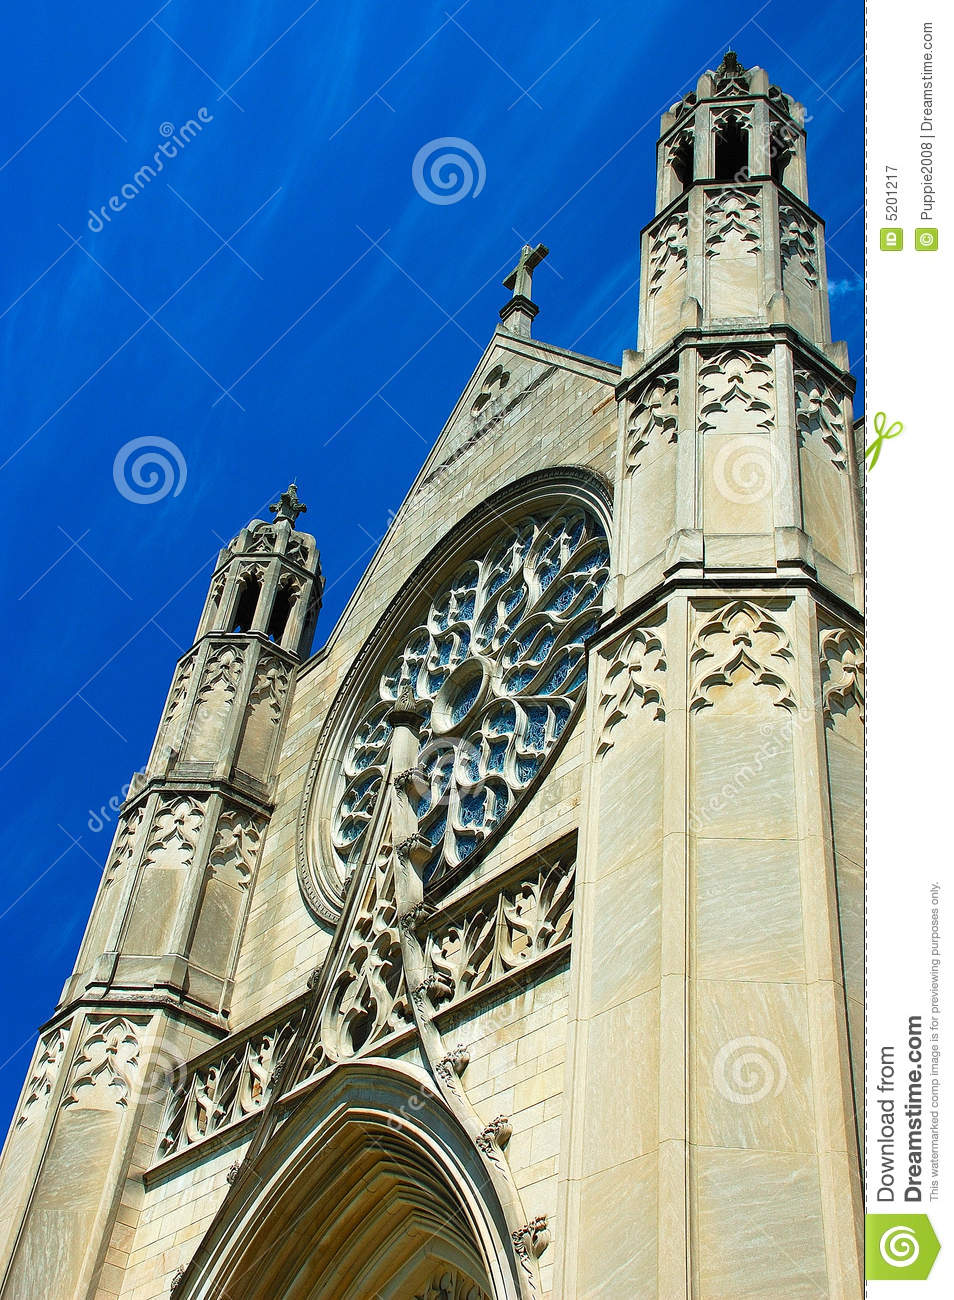 Gothic Architecture In Blue Sky Stock Image  Image 5201217